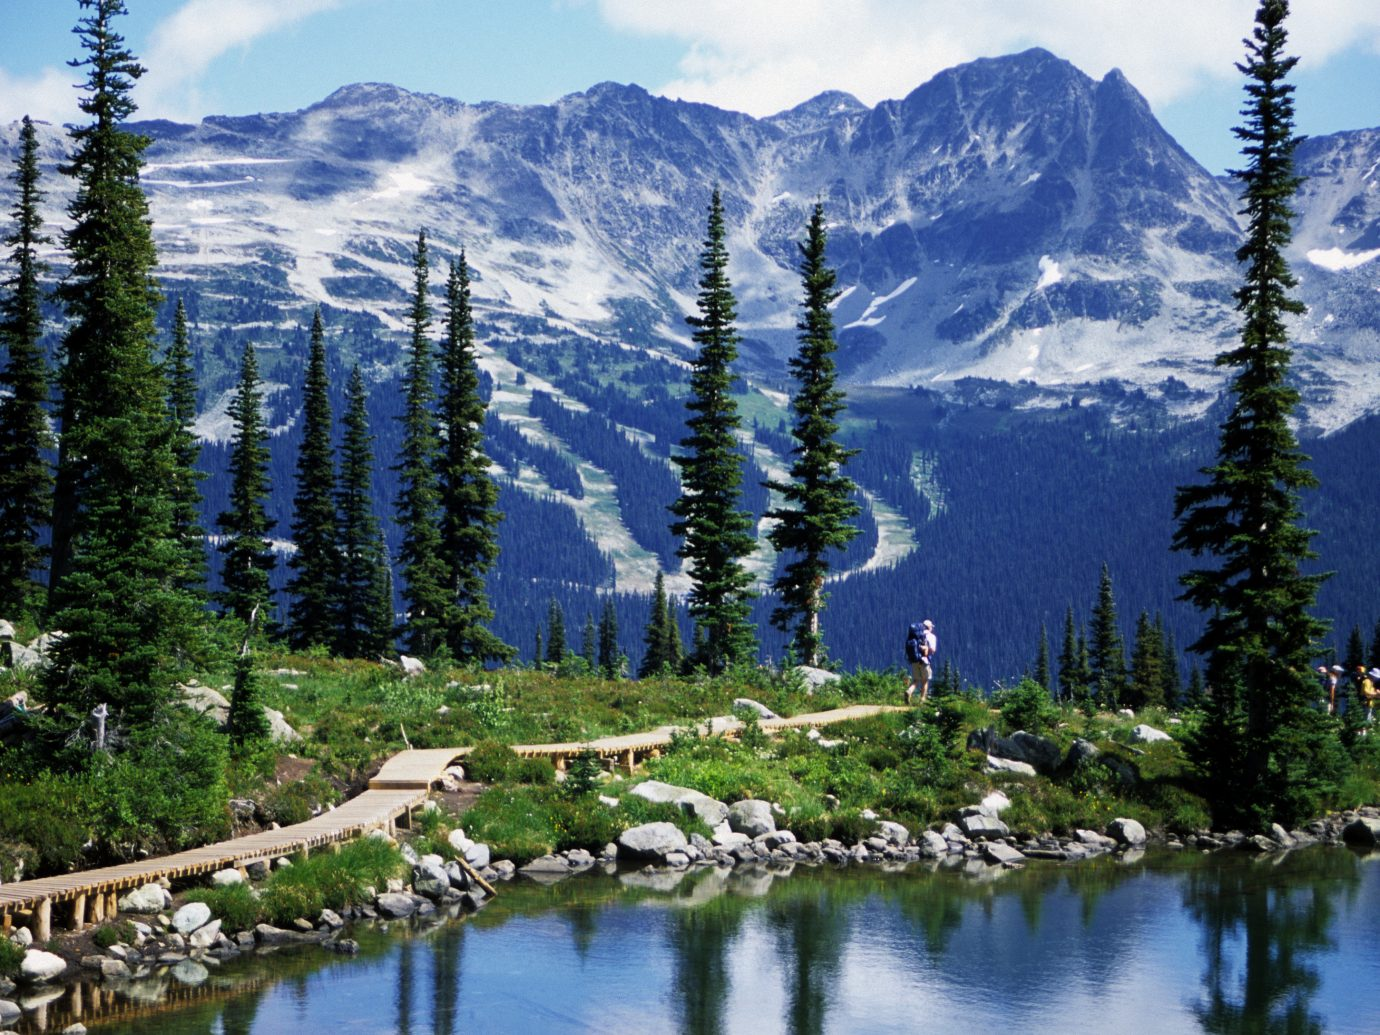 Beauty Trip Ideas tree outdoor sky mountain mountainous landforms wilderness Lake reflection mountain range Nature conifer ecosystem woody plant Forest pond landscape alps ridge larch temperate coniferous forest meadow biome surrounded plant wooded hillside